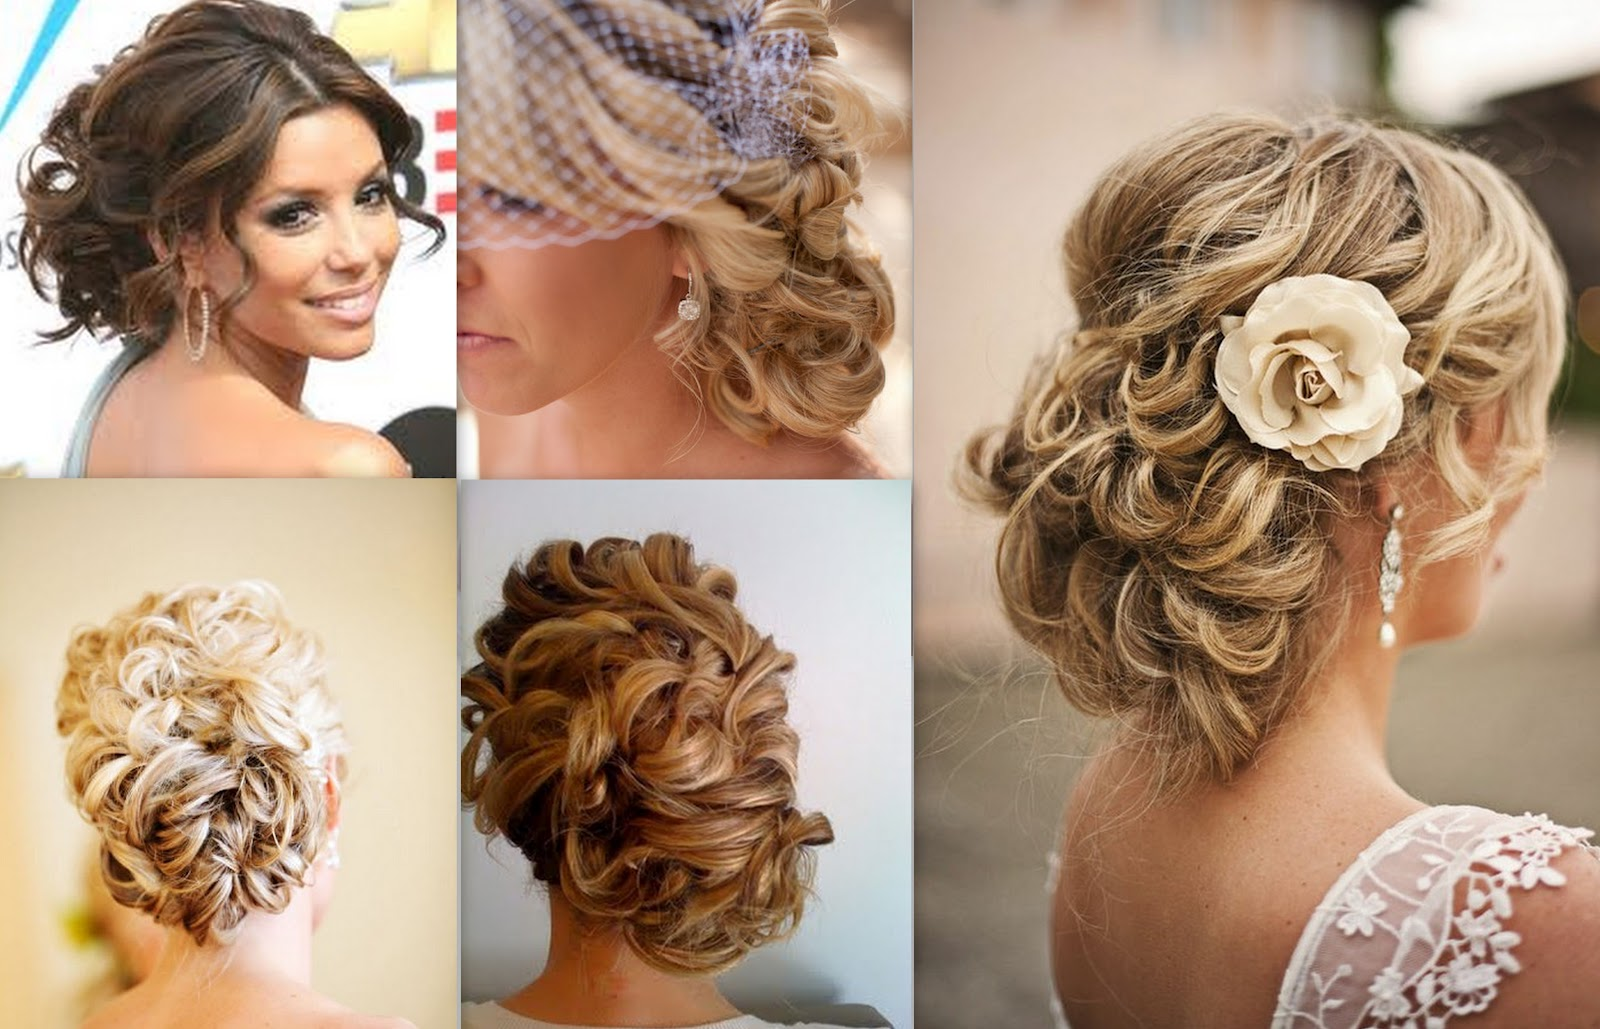 hair extensions for your dallas wedding archives - the beauty box